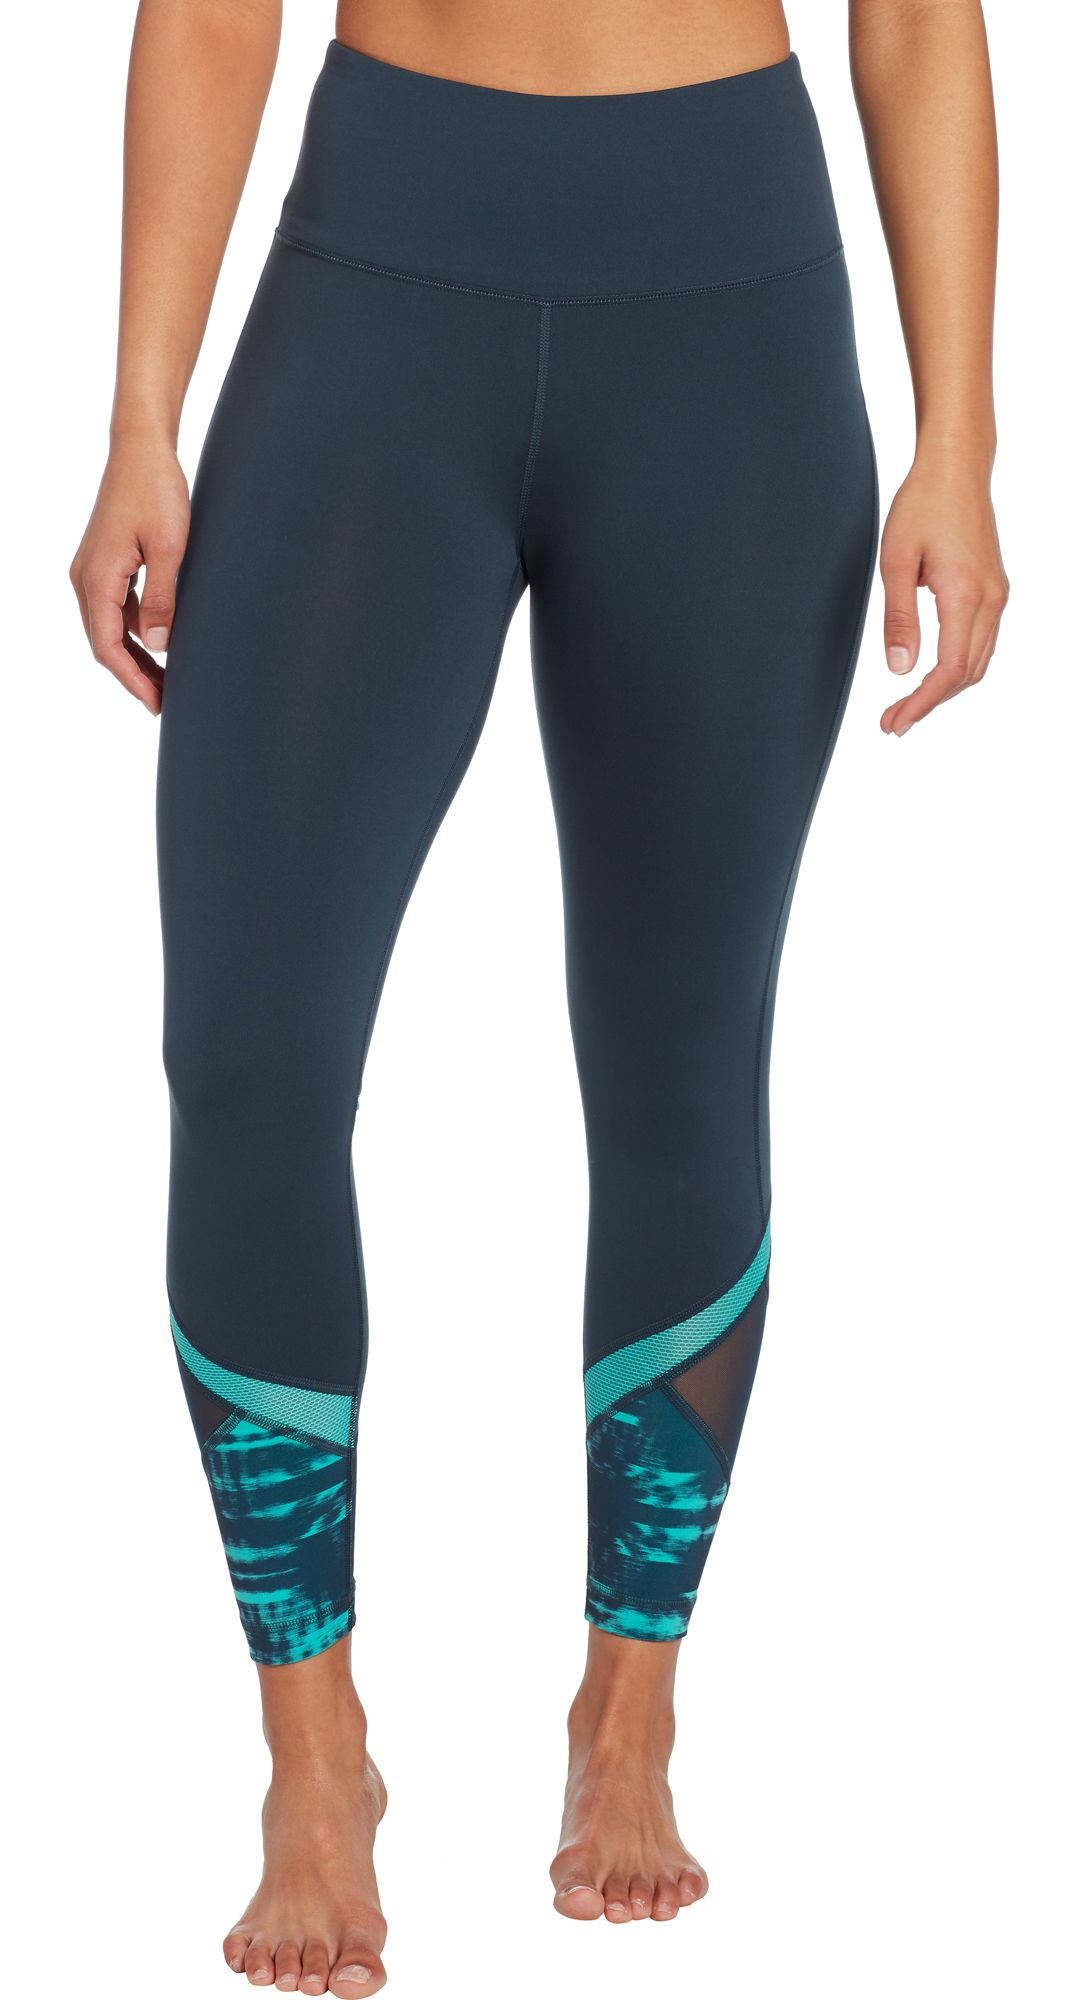 ace870df30ce63 Reebok Women's Performance Color Block Ankle Tights | DICK'S ...